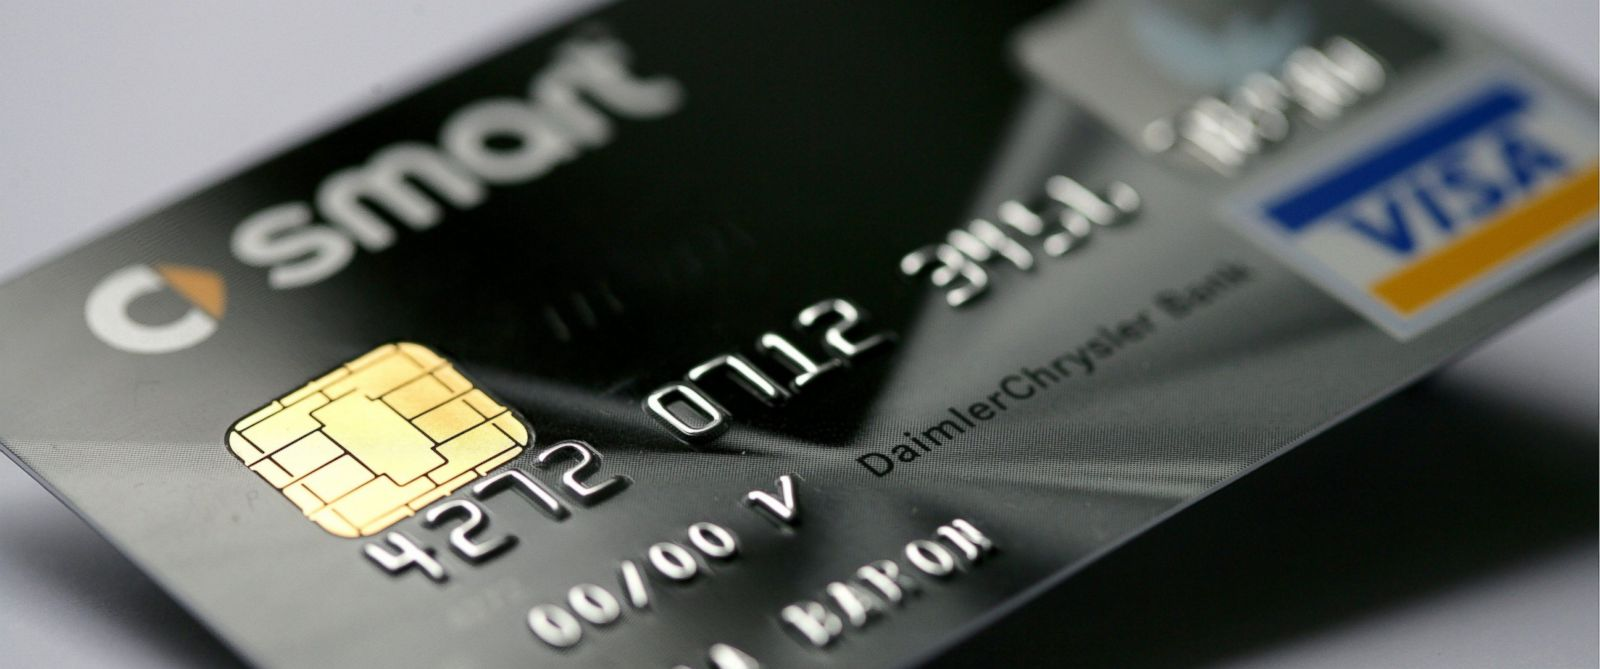 bankcards betting 2